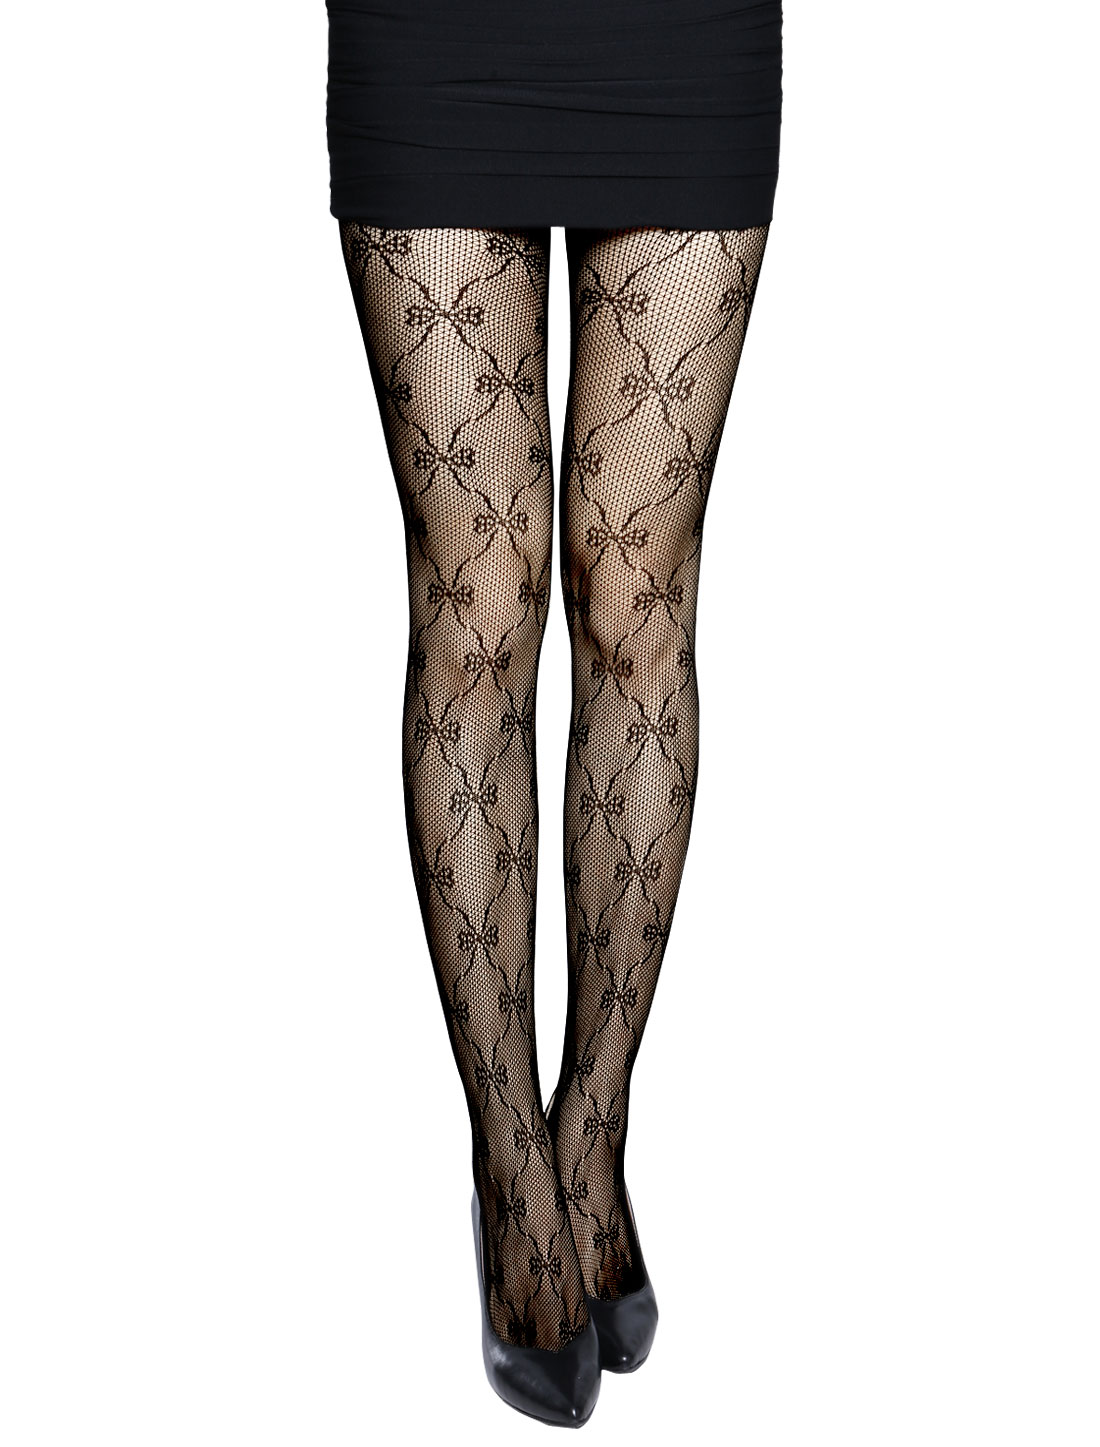 Women Bowknot Design Footed Sexy Fishnet Pantyhose Black XS